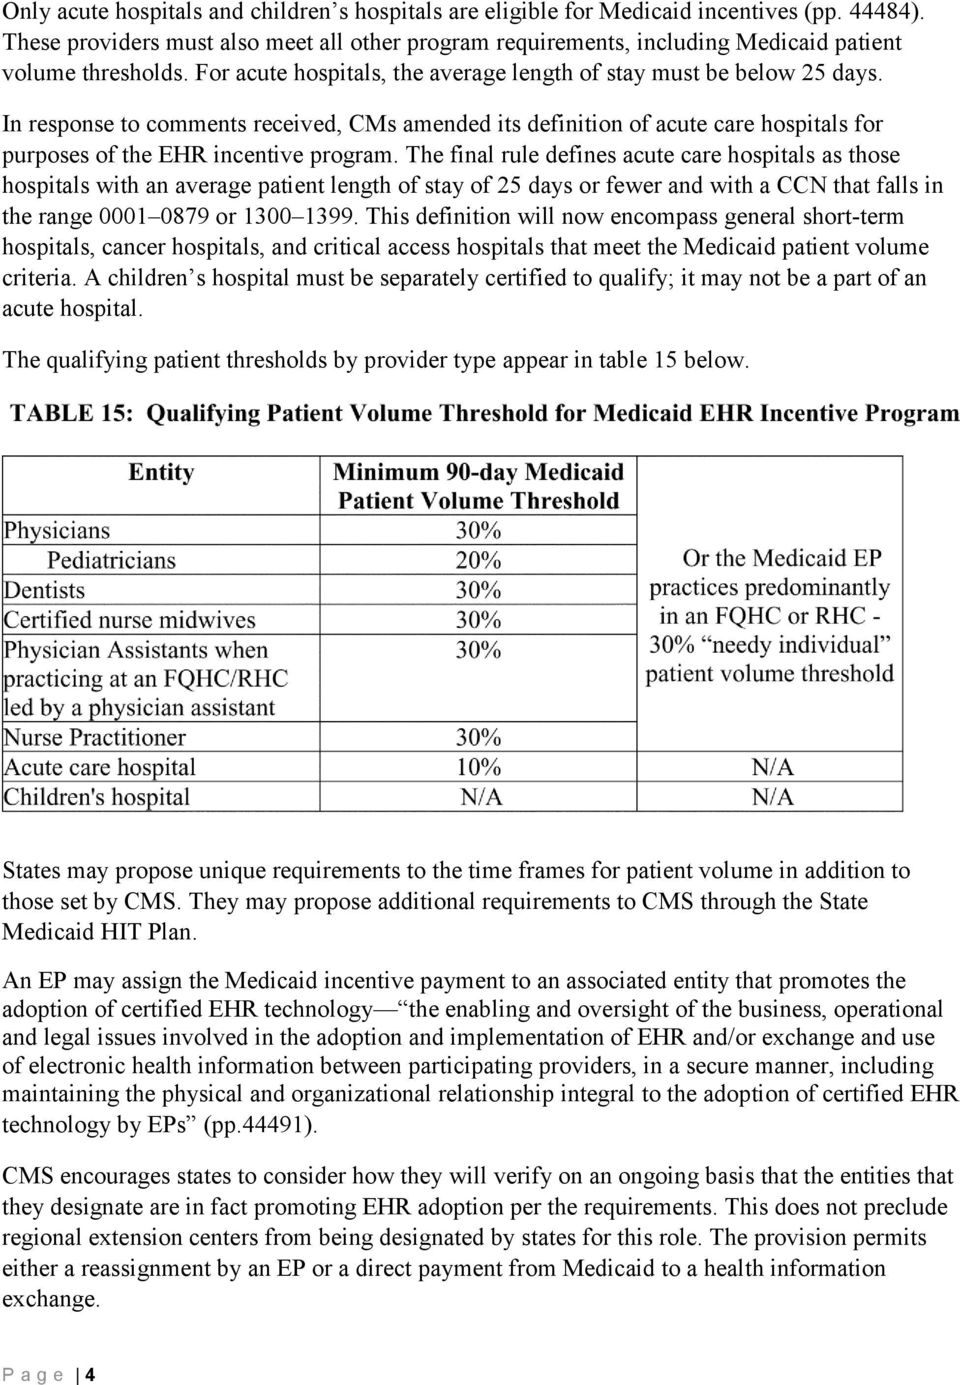 In response to comments received, CMs amended its definition of acute care hospitals for purposes of the EHR incentive program.